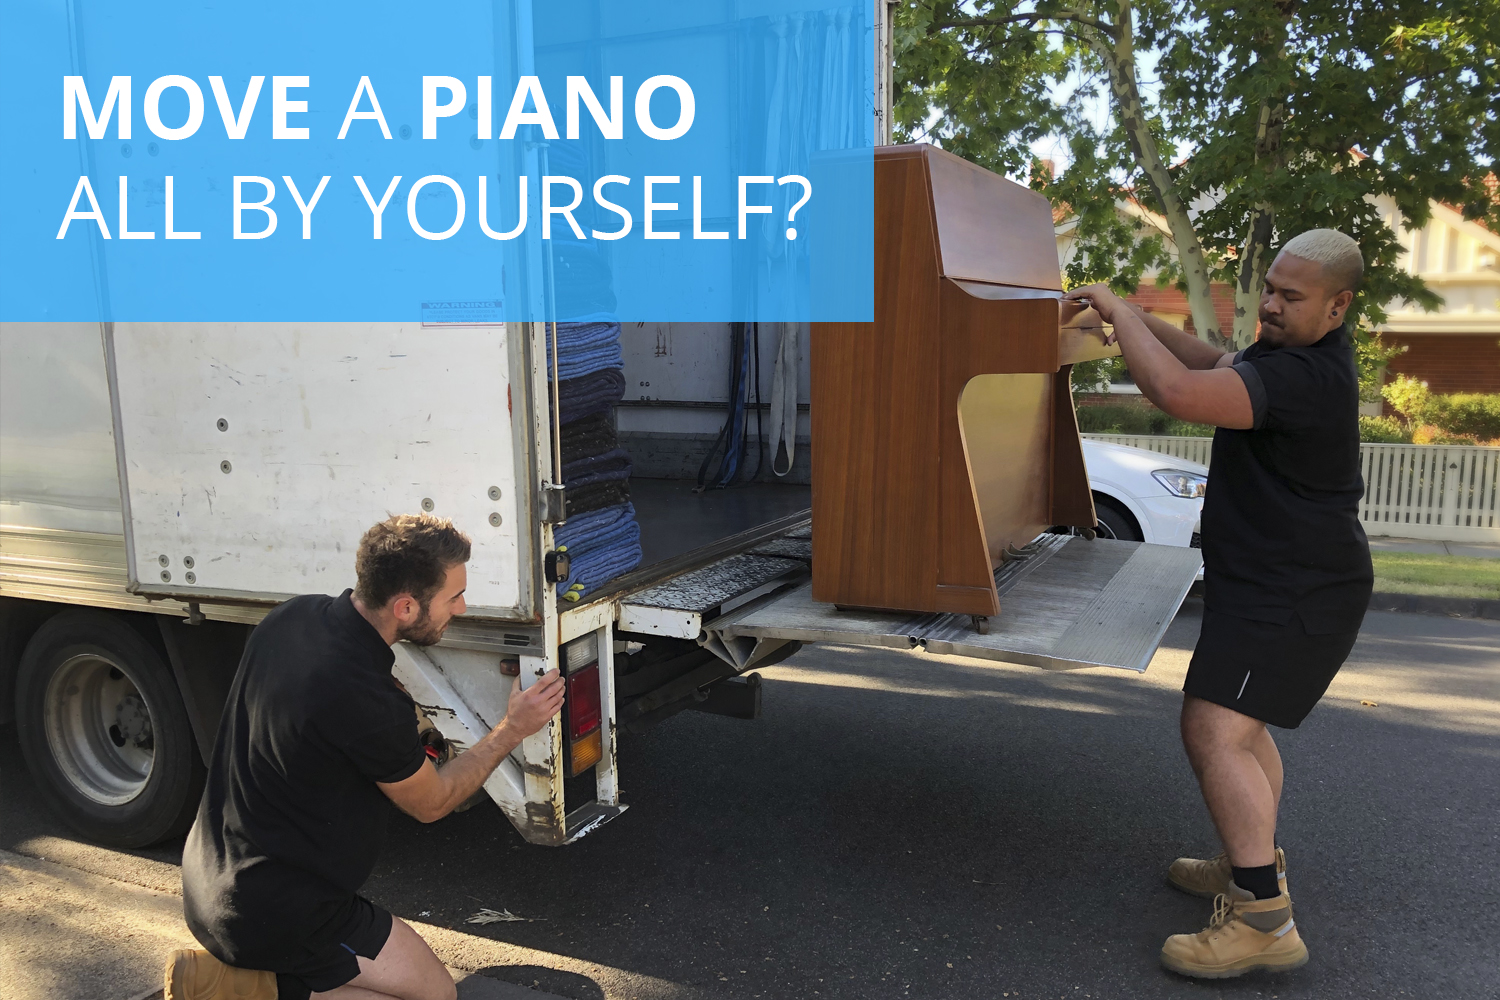 Why Should You Not Risk Move a Piano All by Yourself?